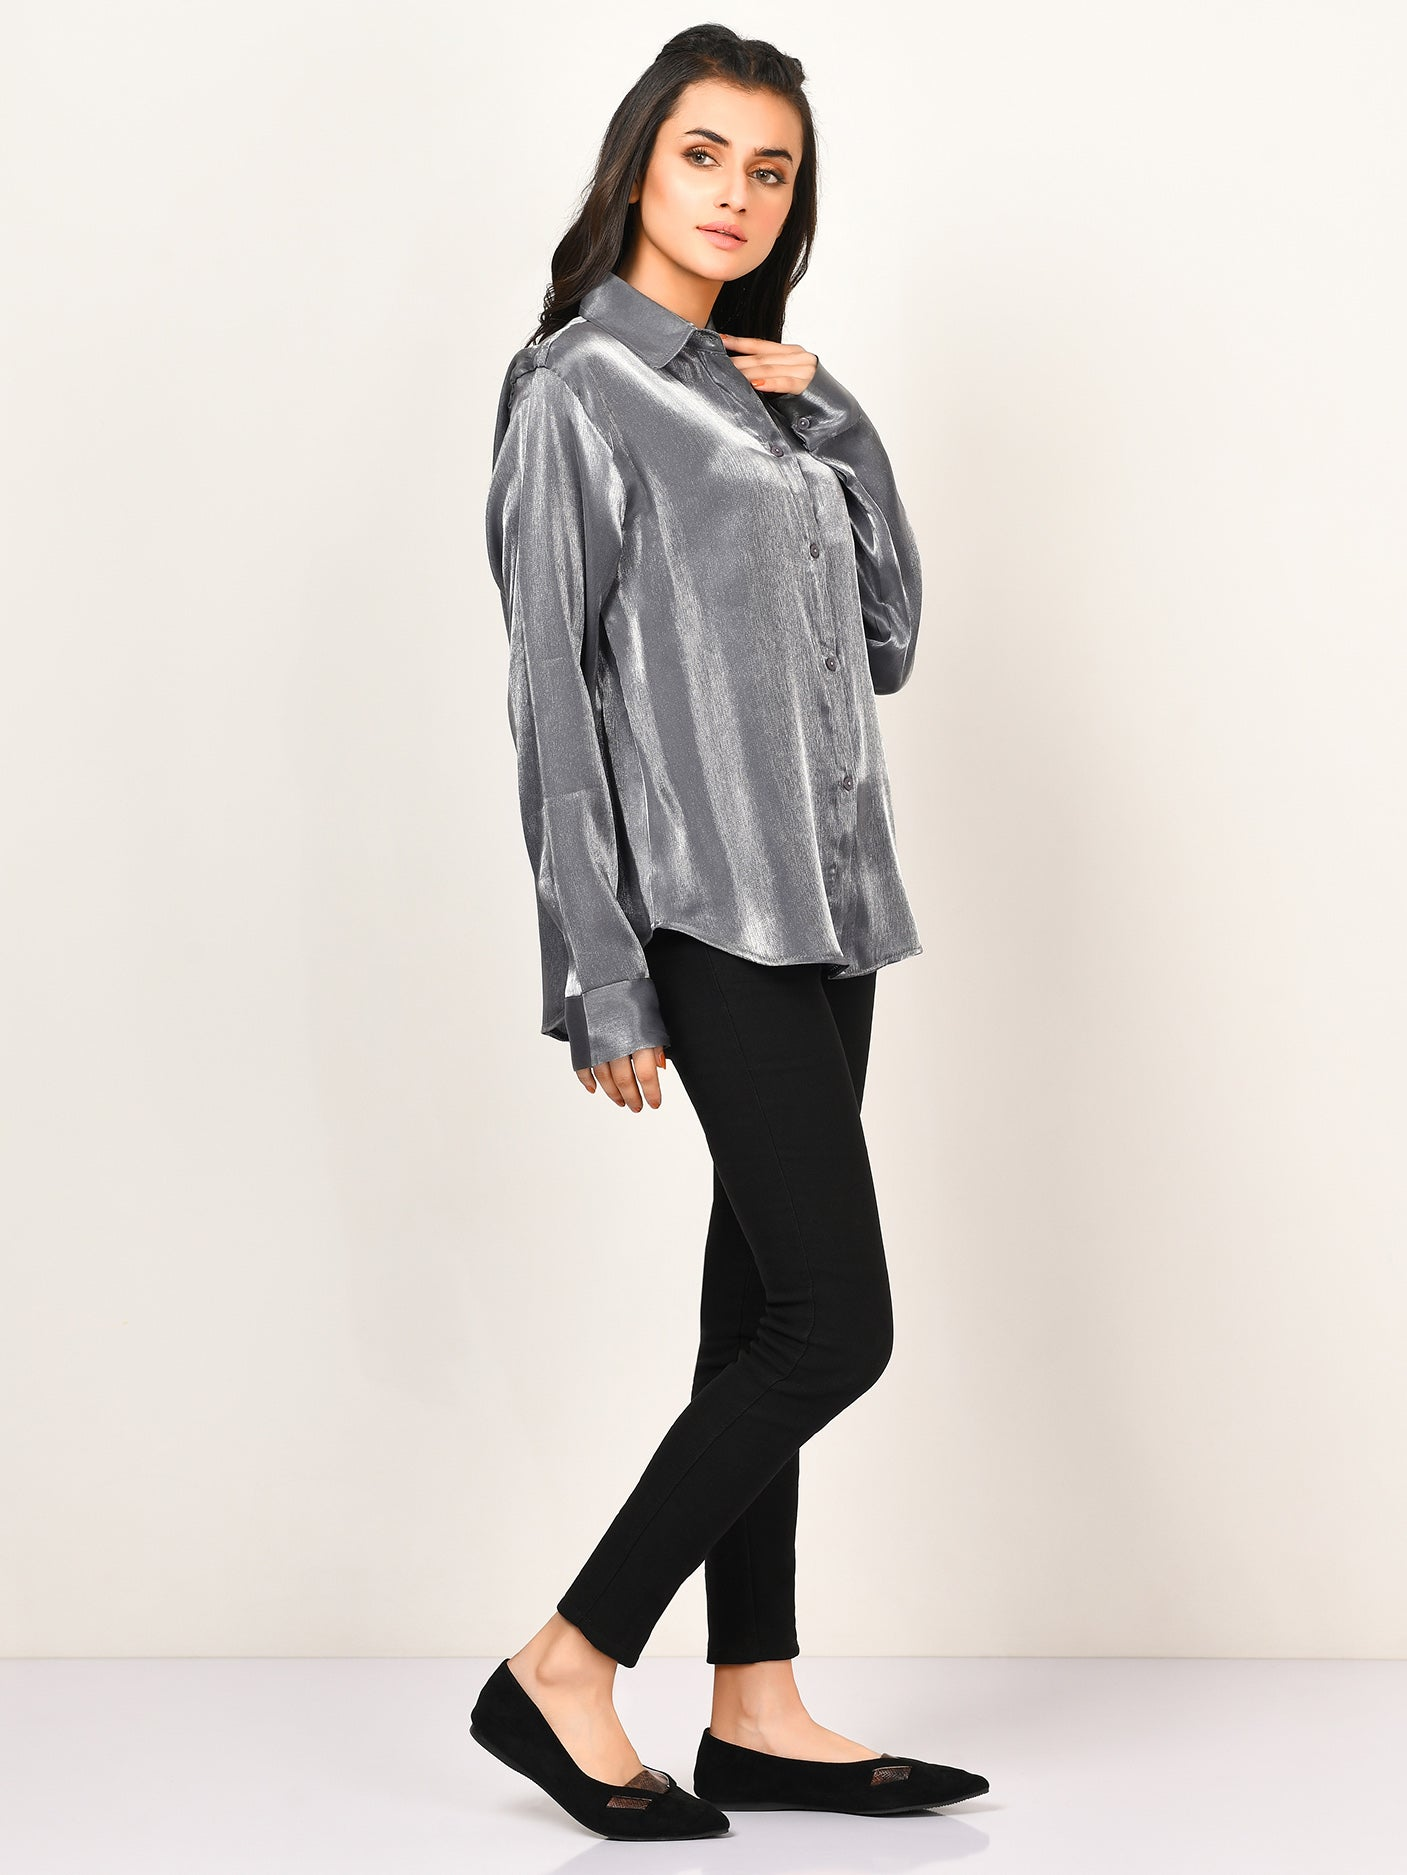 Shimmer Collared Top